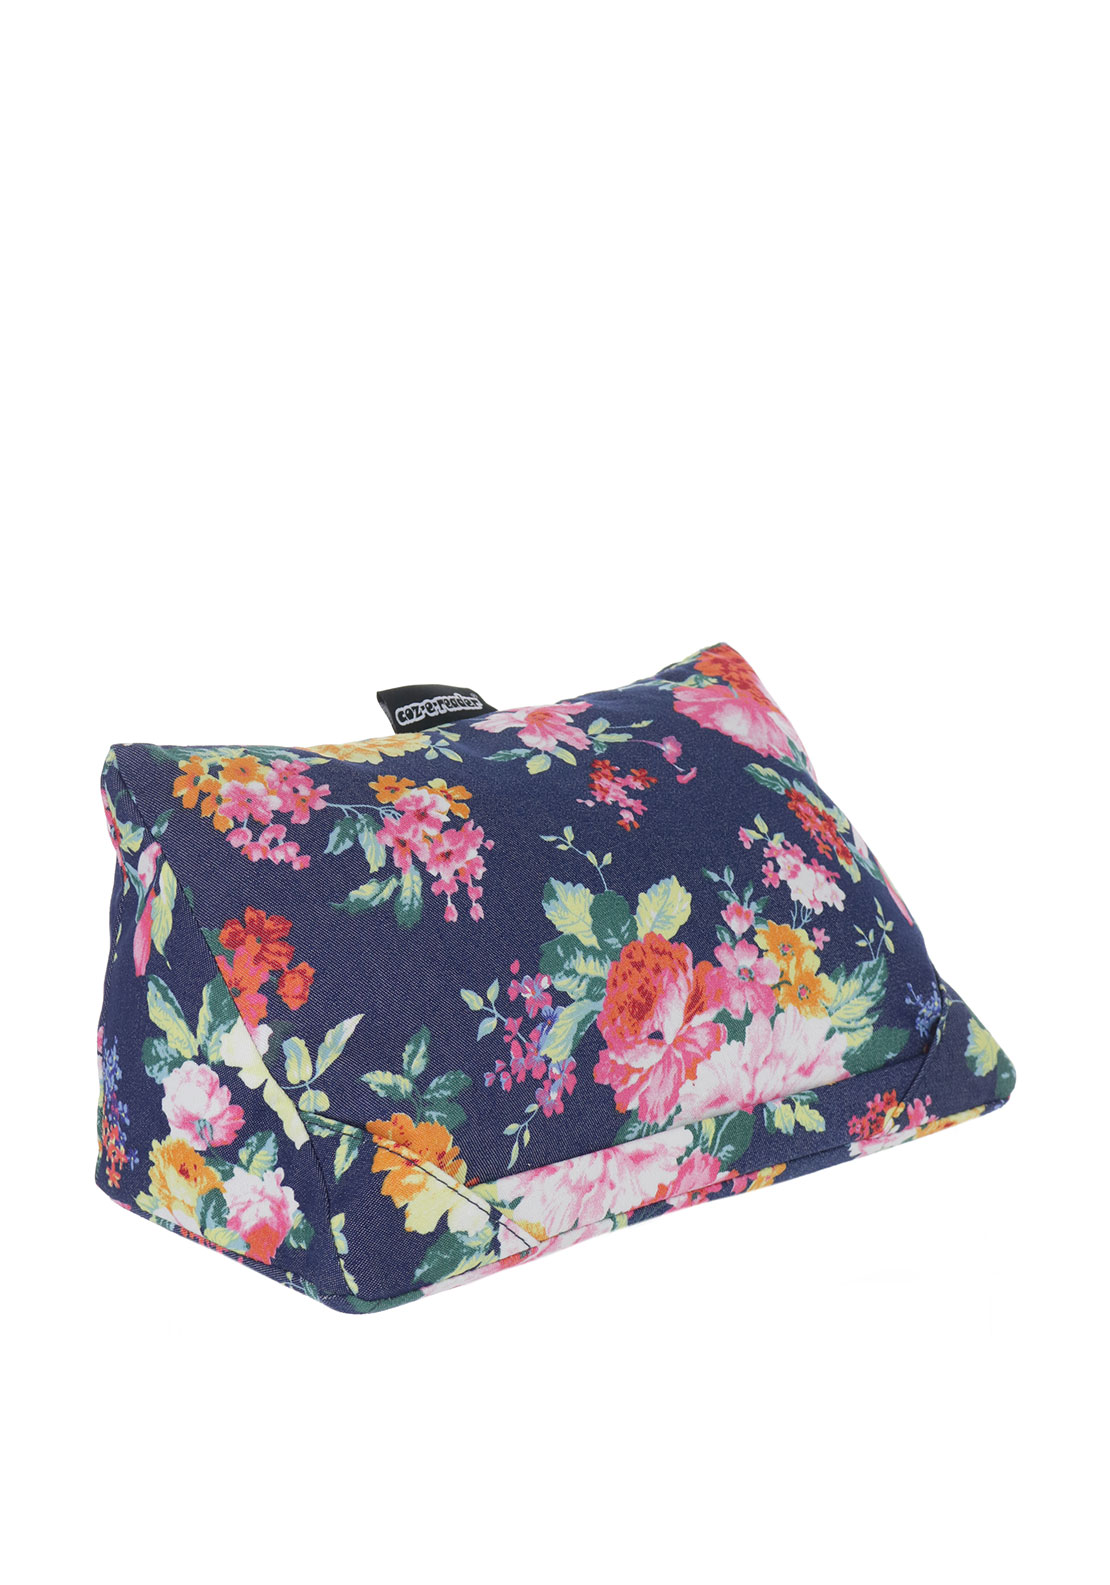 Coz-e-reader Floral Tablet Cushion, Navy